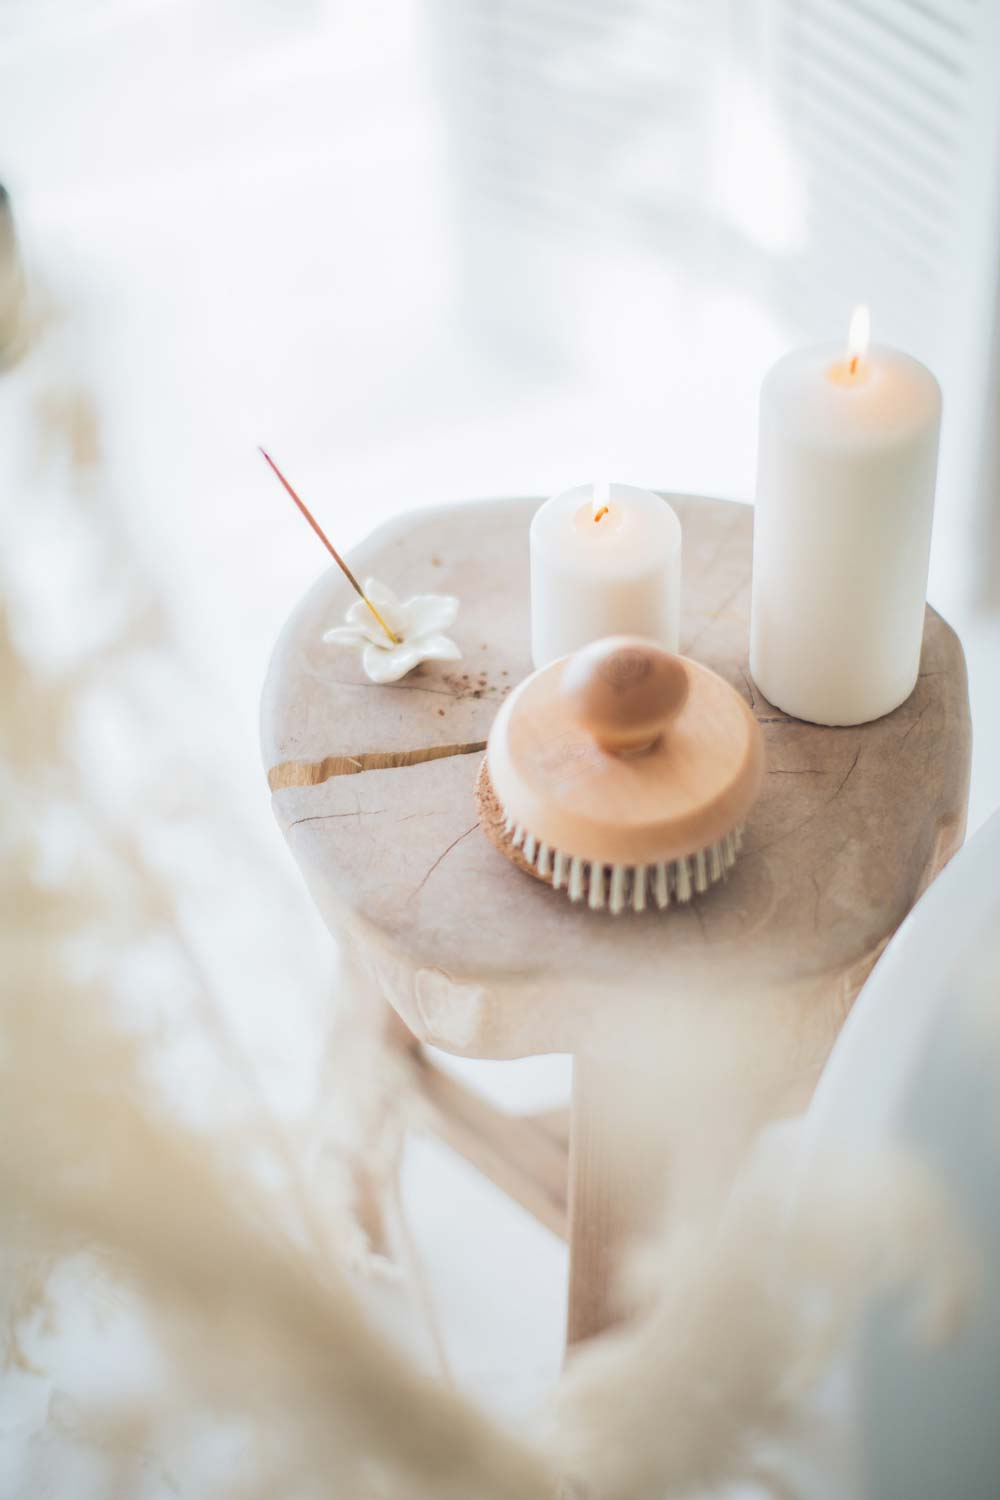 incense-and-white-candles-on-a-stool-3865712